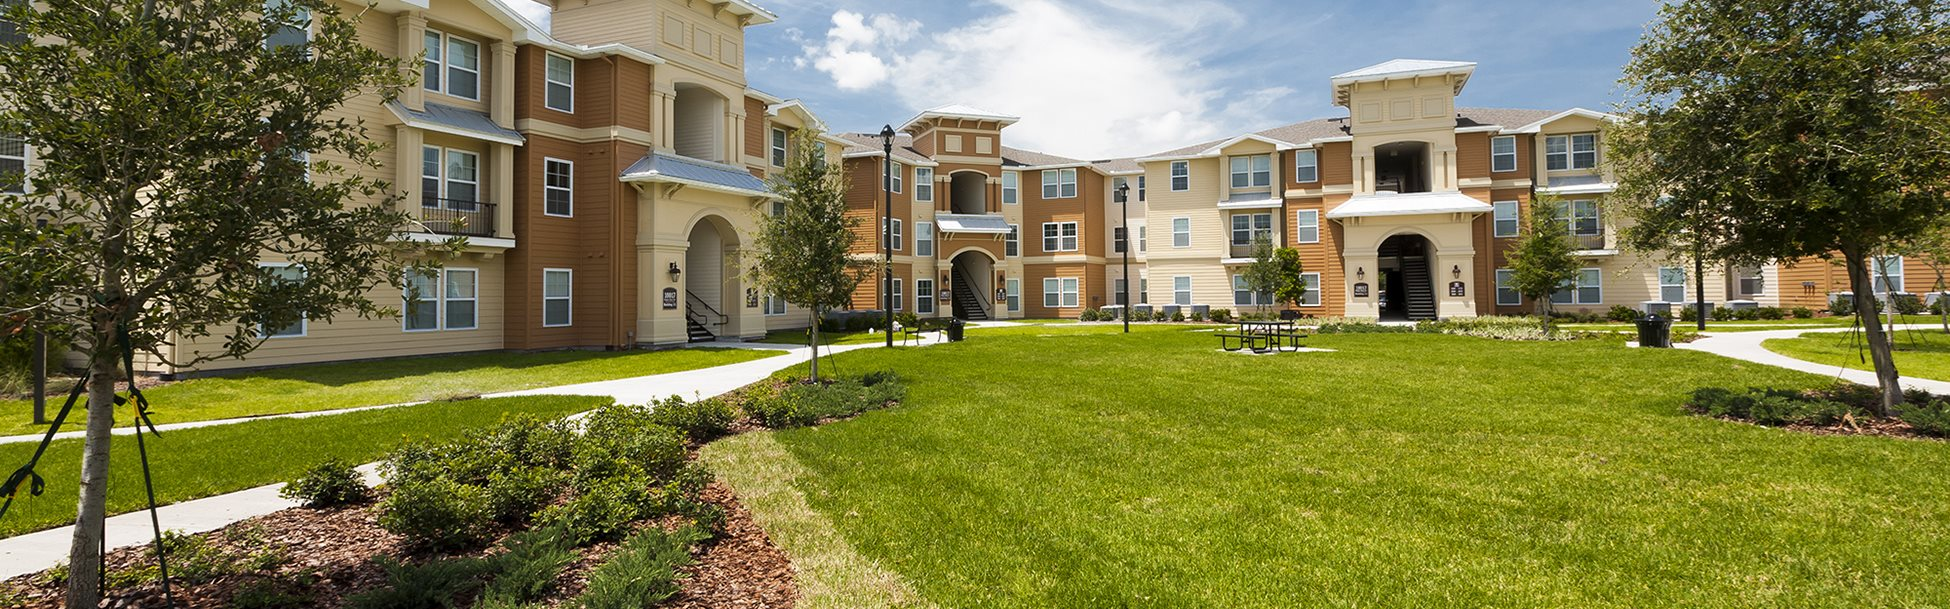 River Ridge Apartments for rent in Orlando, FL. Make this community your new home or visit other Concord Rents communities at ConcordRents.com. Building exterior